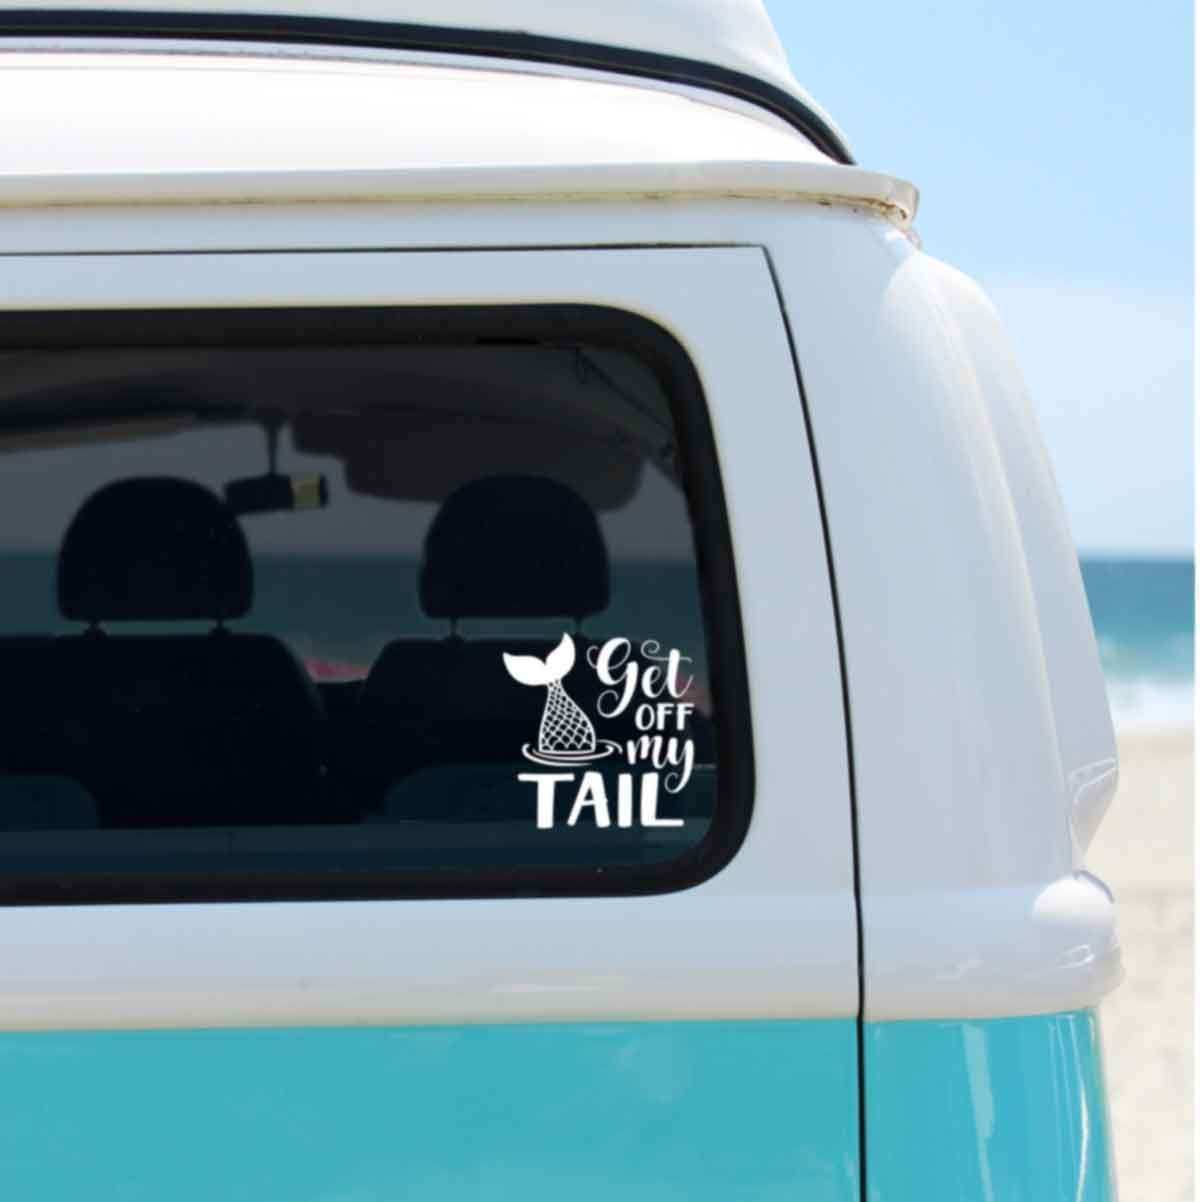 Custom Get Off My Tail Car Decal Funny Mermaid Quote Decal Window Sticker For Car Van T Nurse Life Decal Nurse Car Decal Car Decals [ 1202 x 1200 Pixel ]